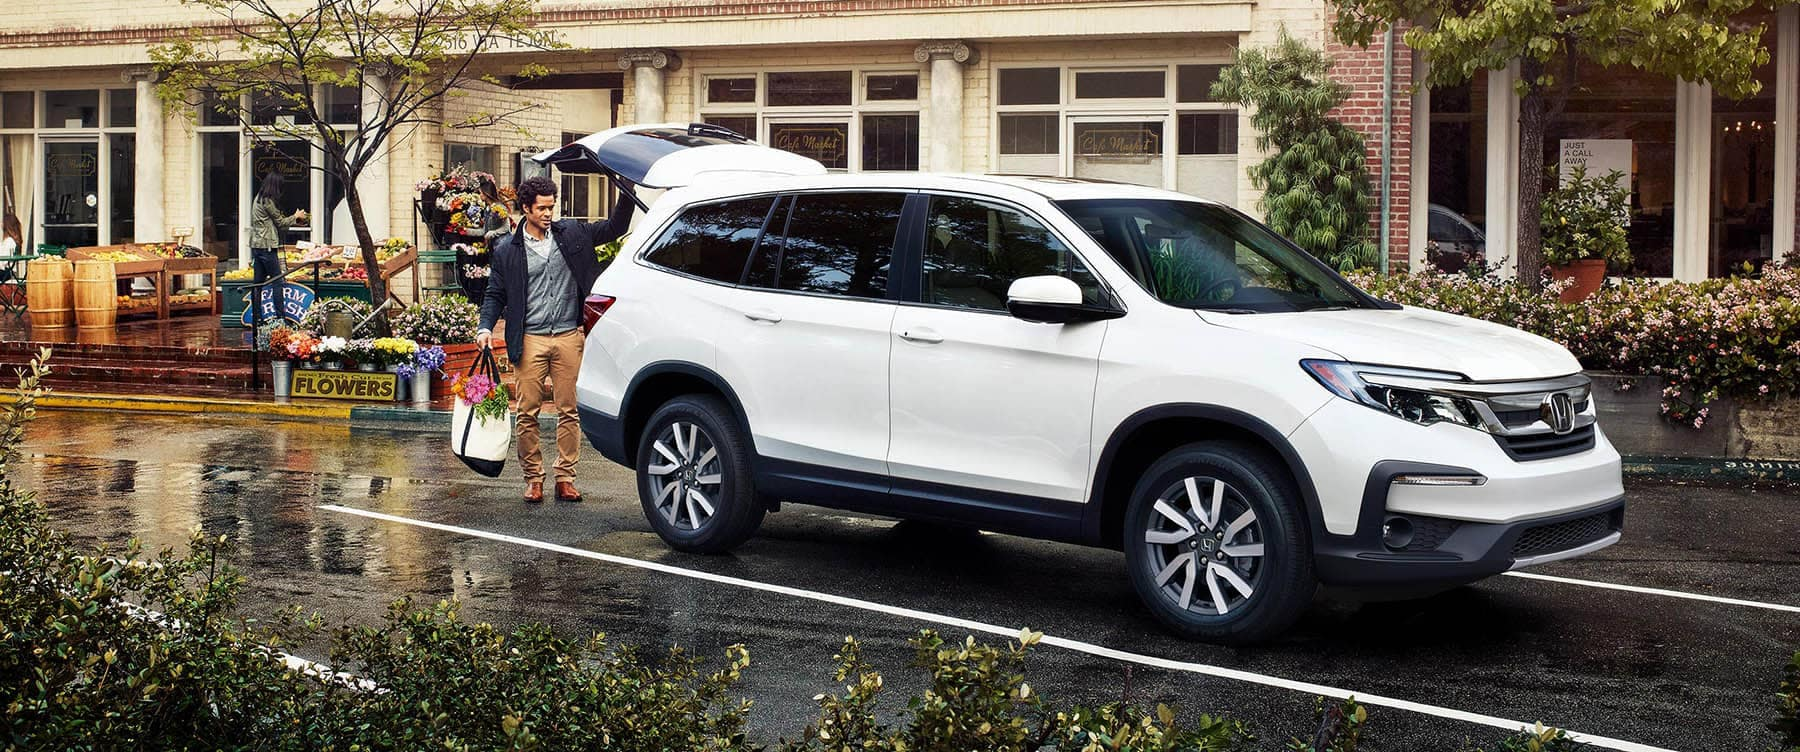 2019 Honda Pilot Parked at store with man loading bags in cargo area